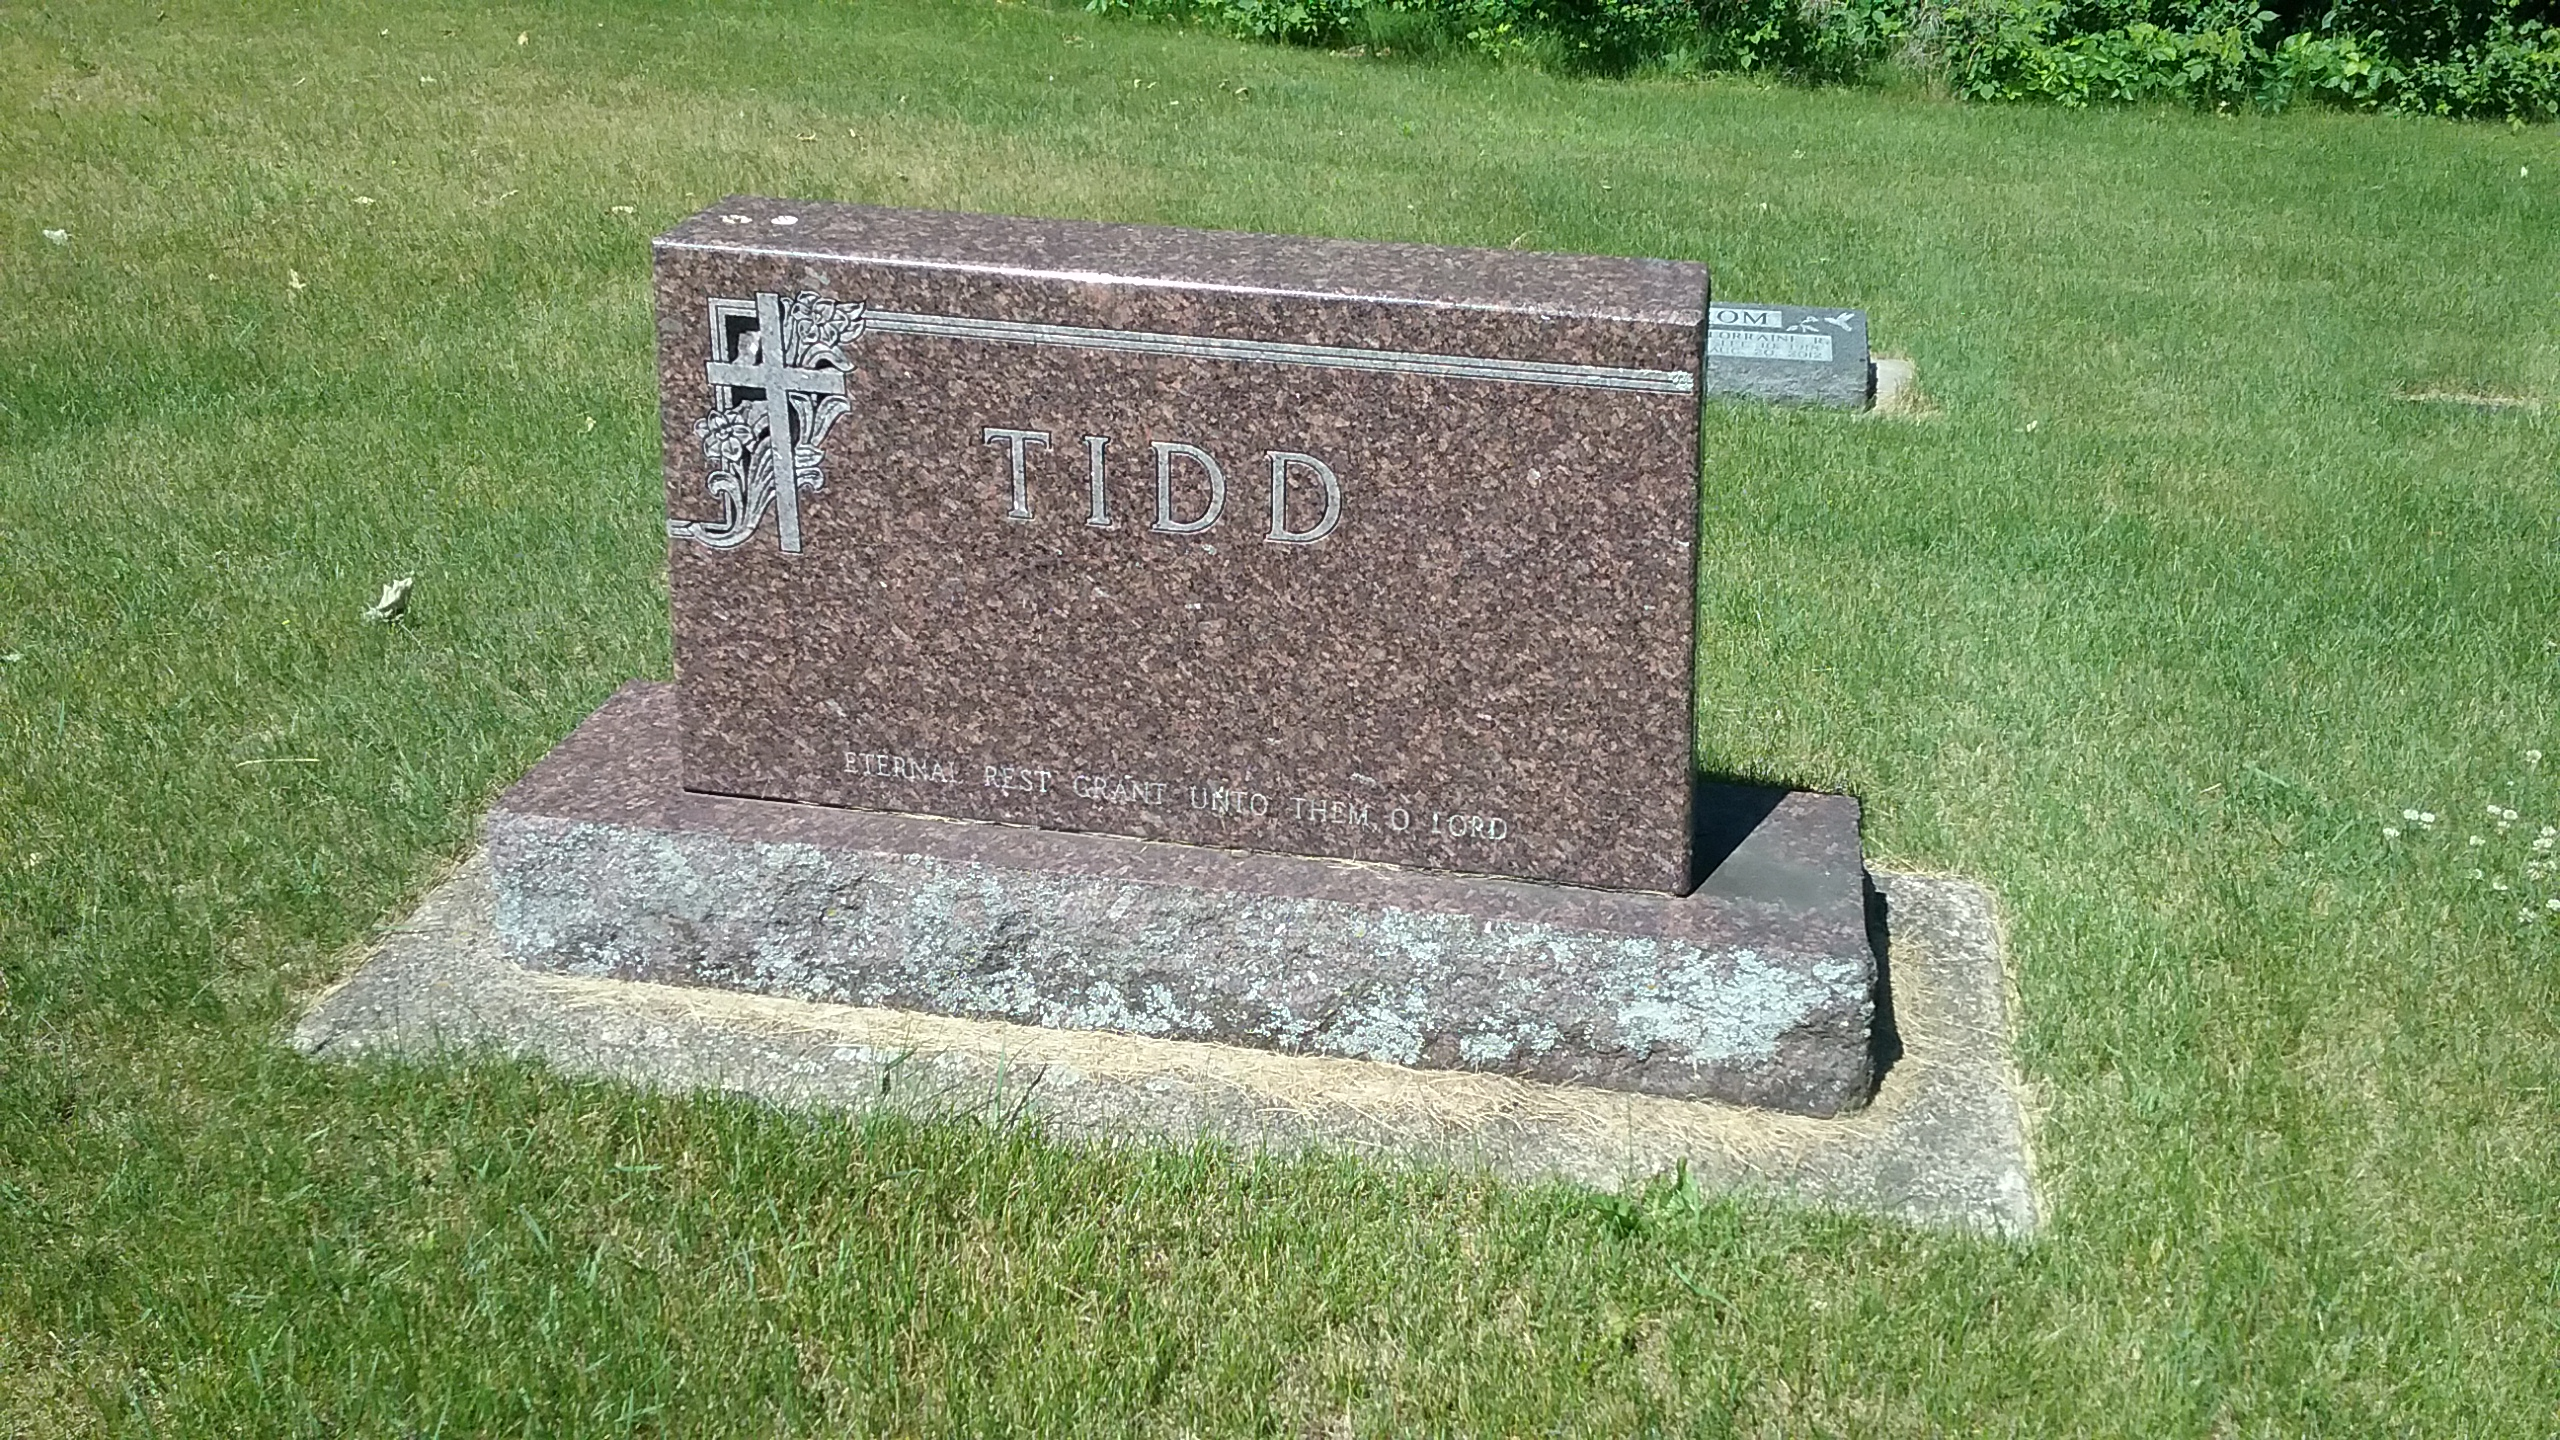 Tidd family grave marker, Calvary Cemetery, Little Falls, MN. Photo by Mary Warner, 2017.